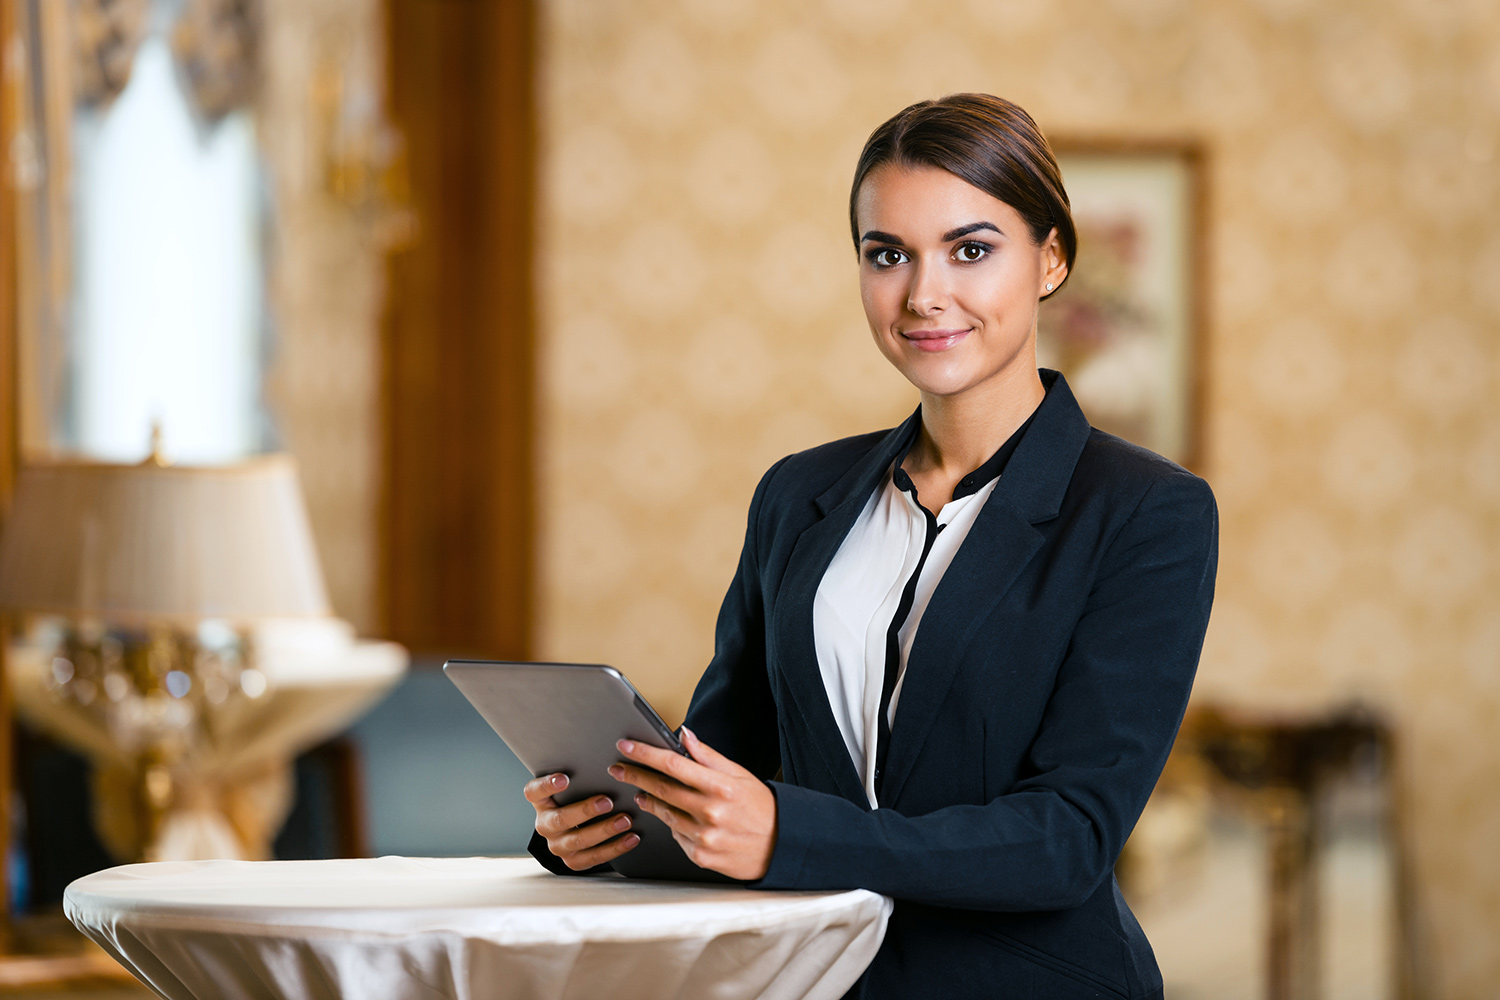 Hospitality Professional At Work